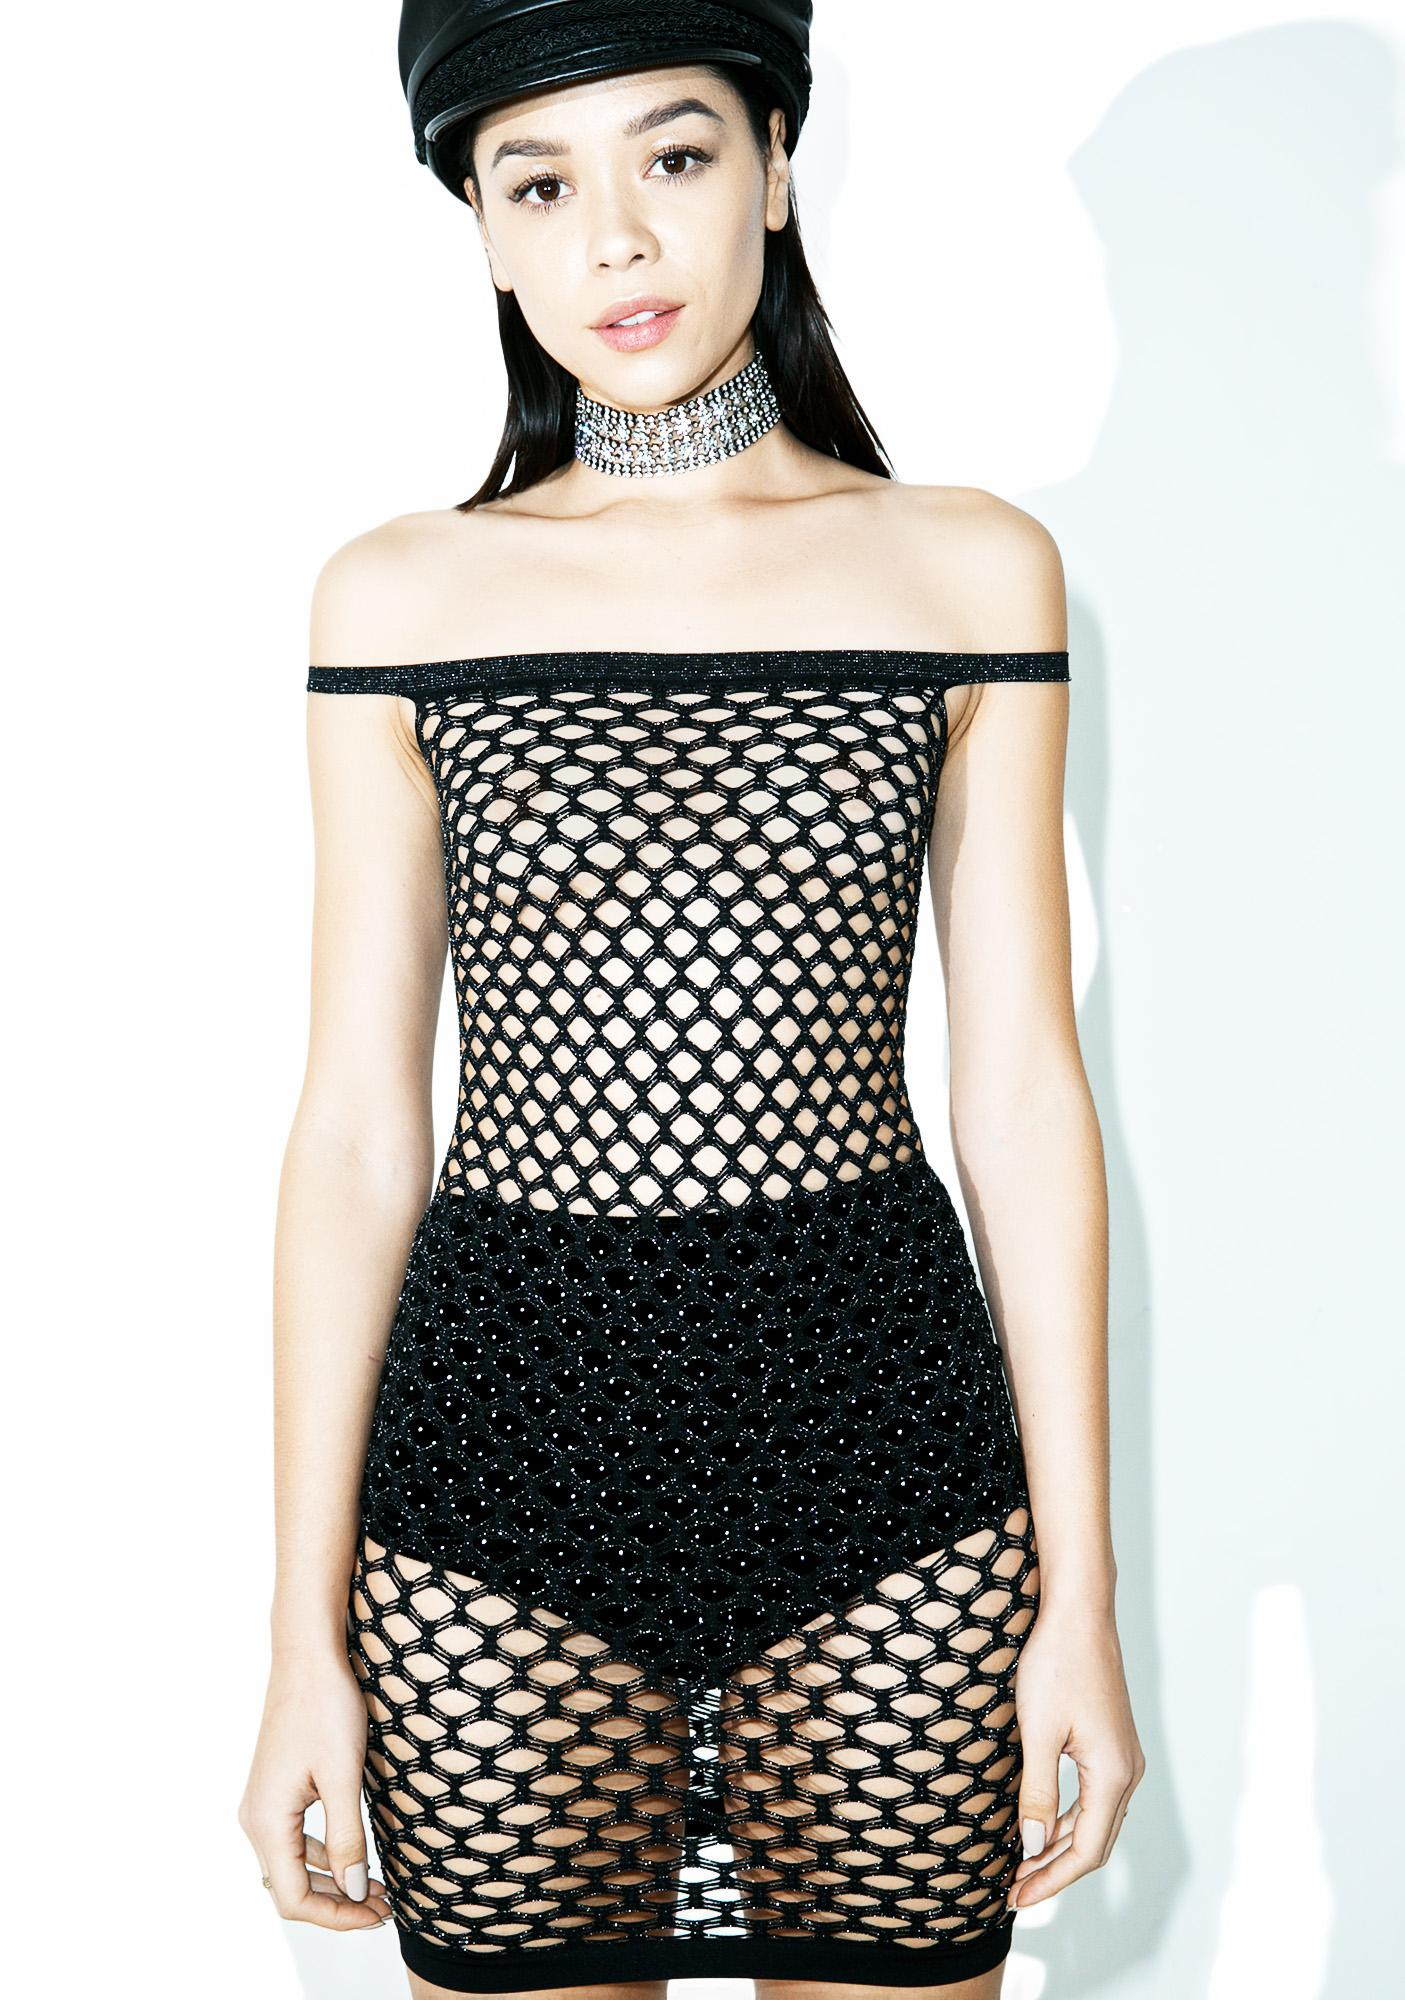 Body Party Glitzy Fishnet Slip